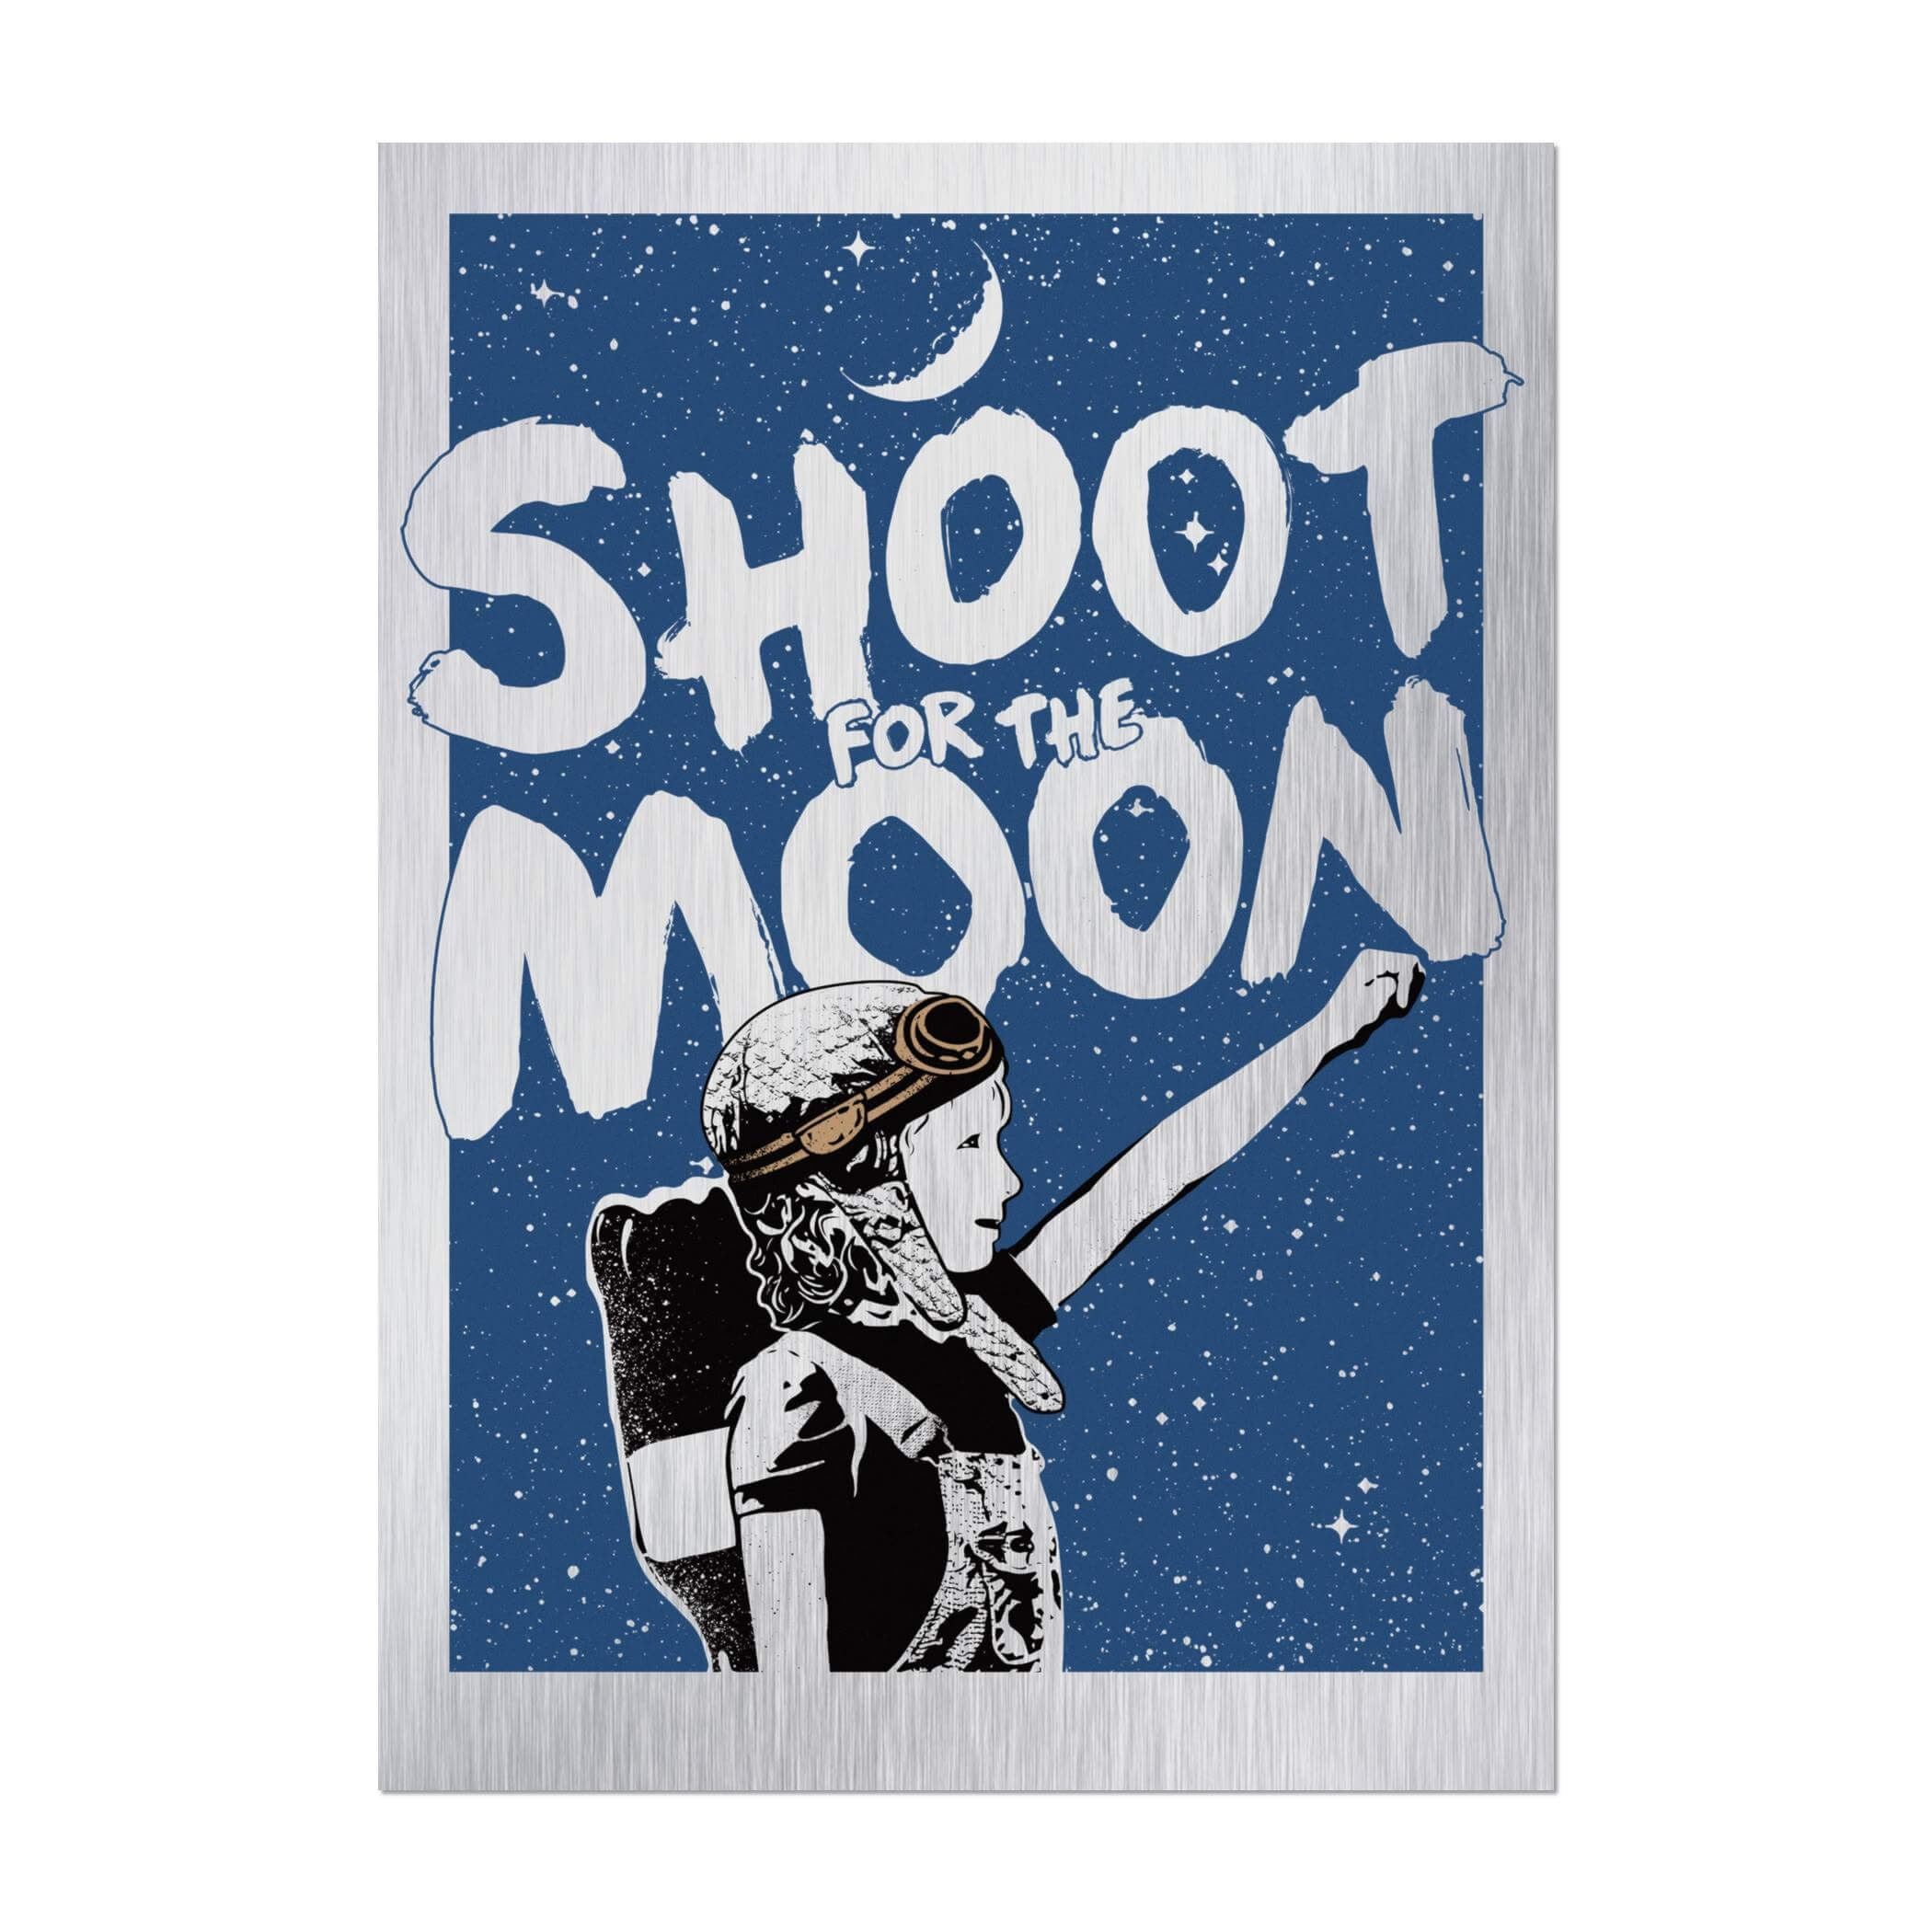 NME - Shoot For The Moon (Aluminium Edition)